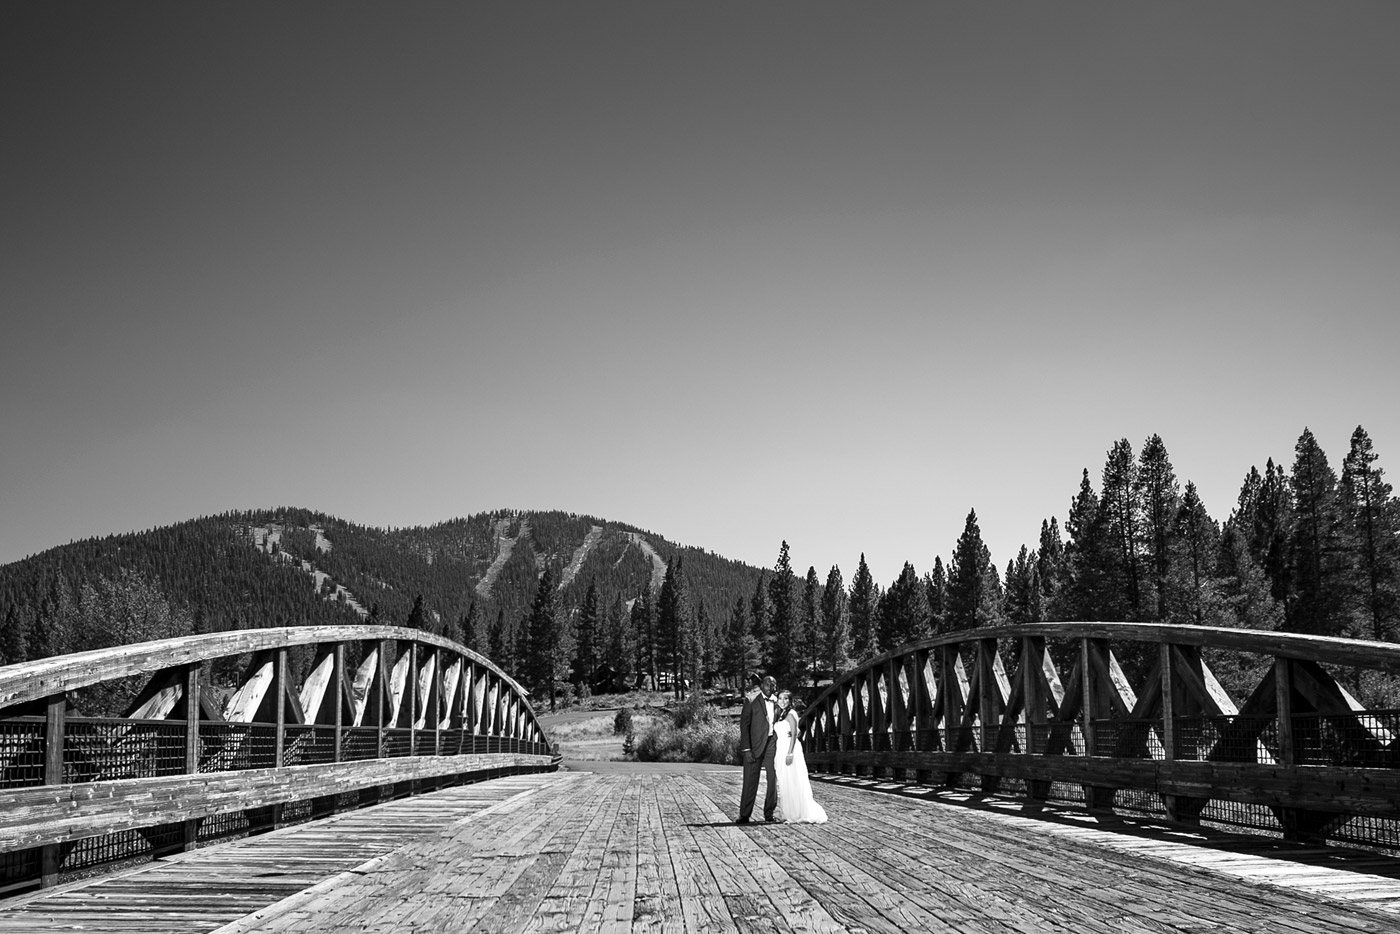 Lake-tahoe-weddings-Lahontan-Golf-Club-weddings-28